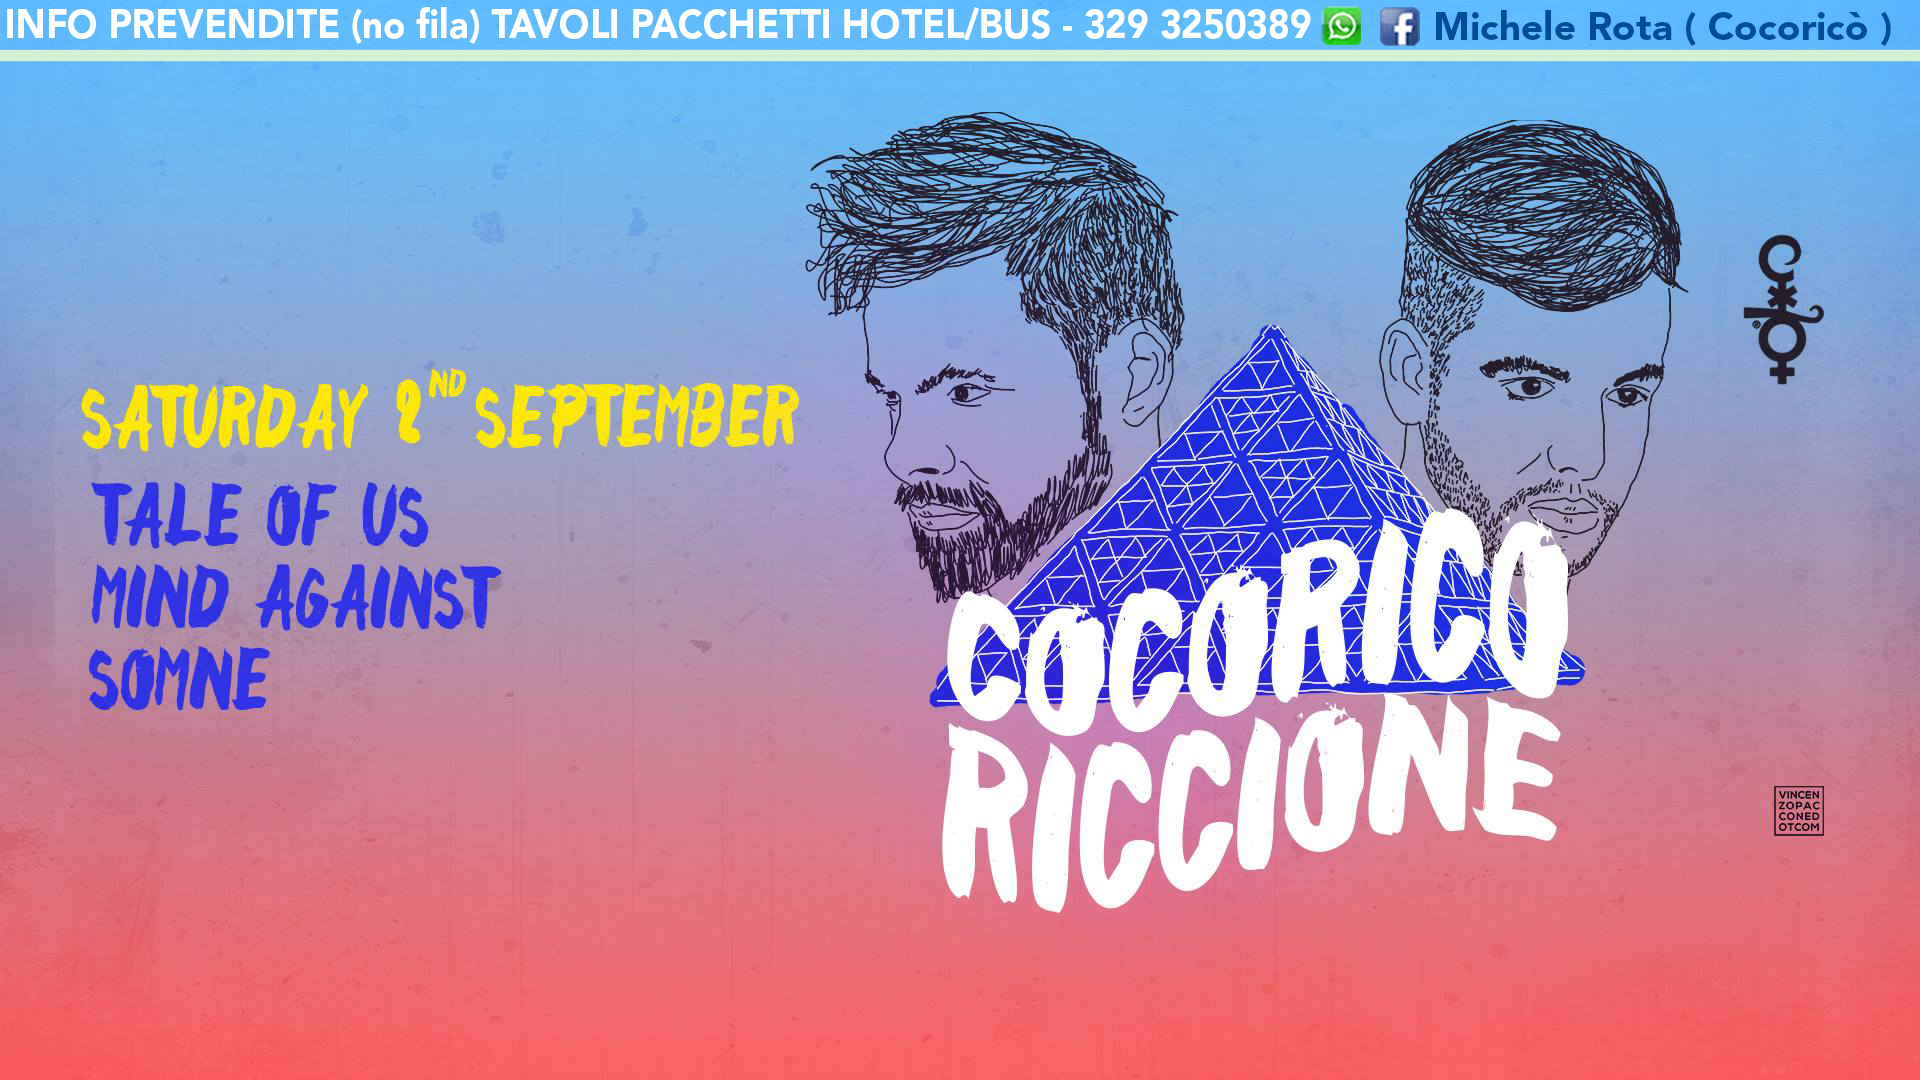 tale of us mind against cocorco riccione 02 09 2017